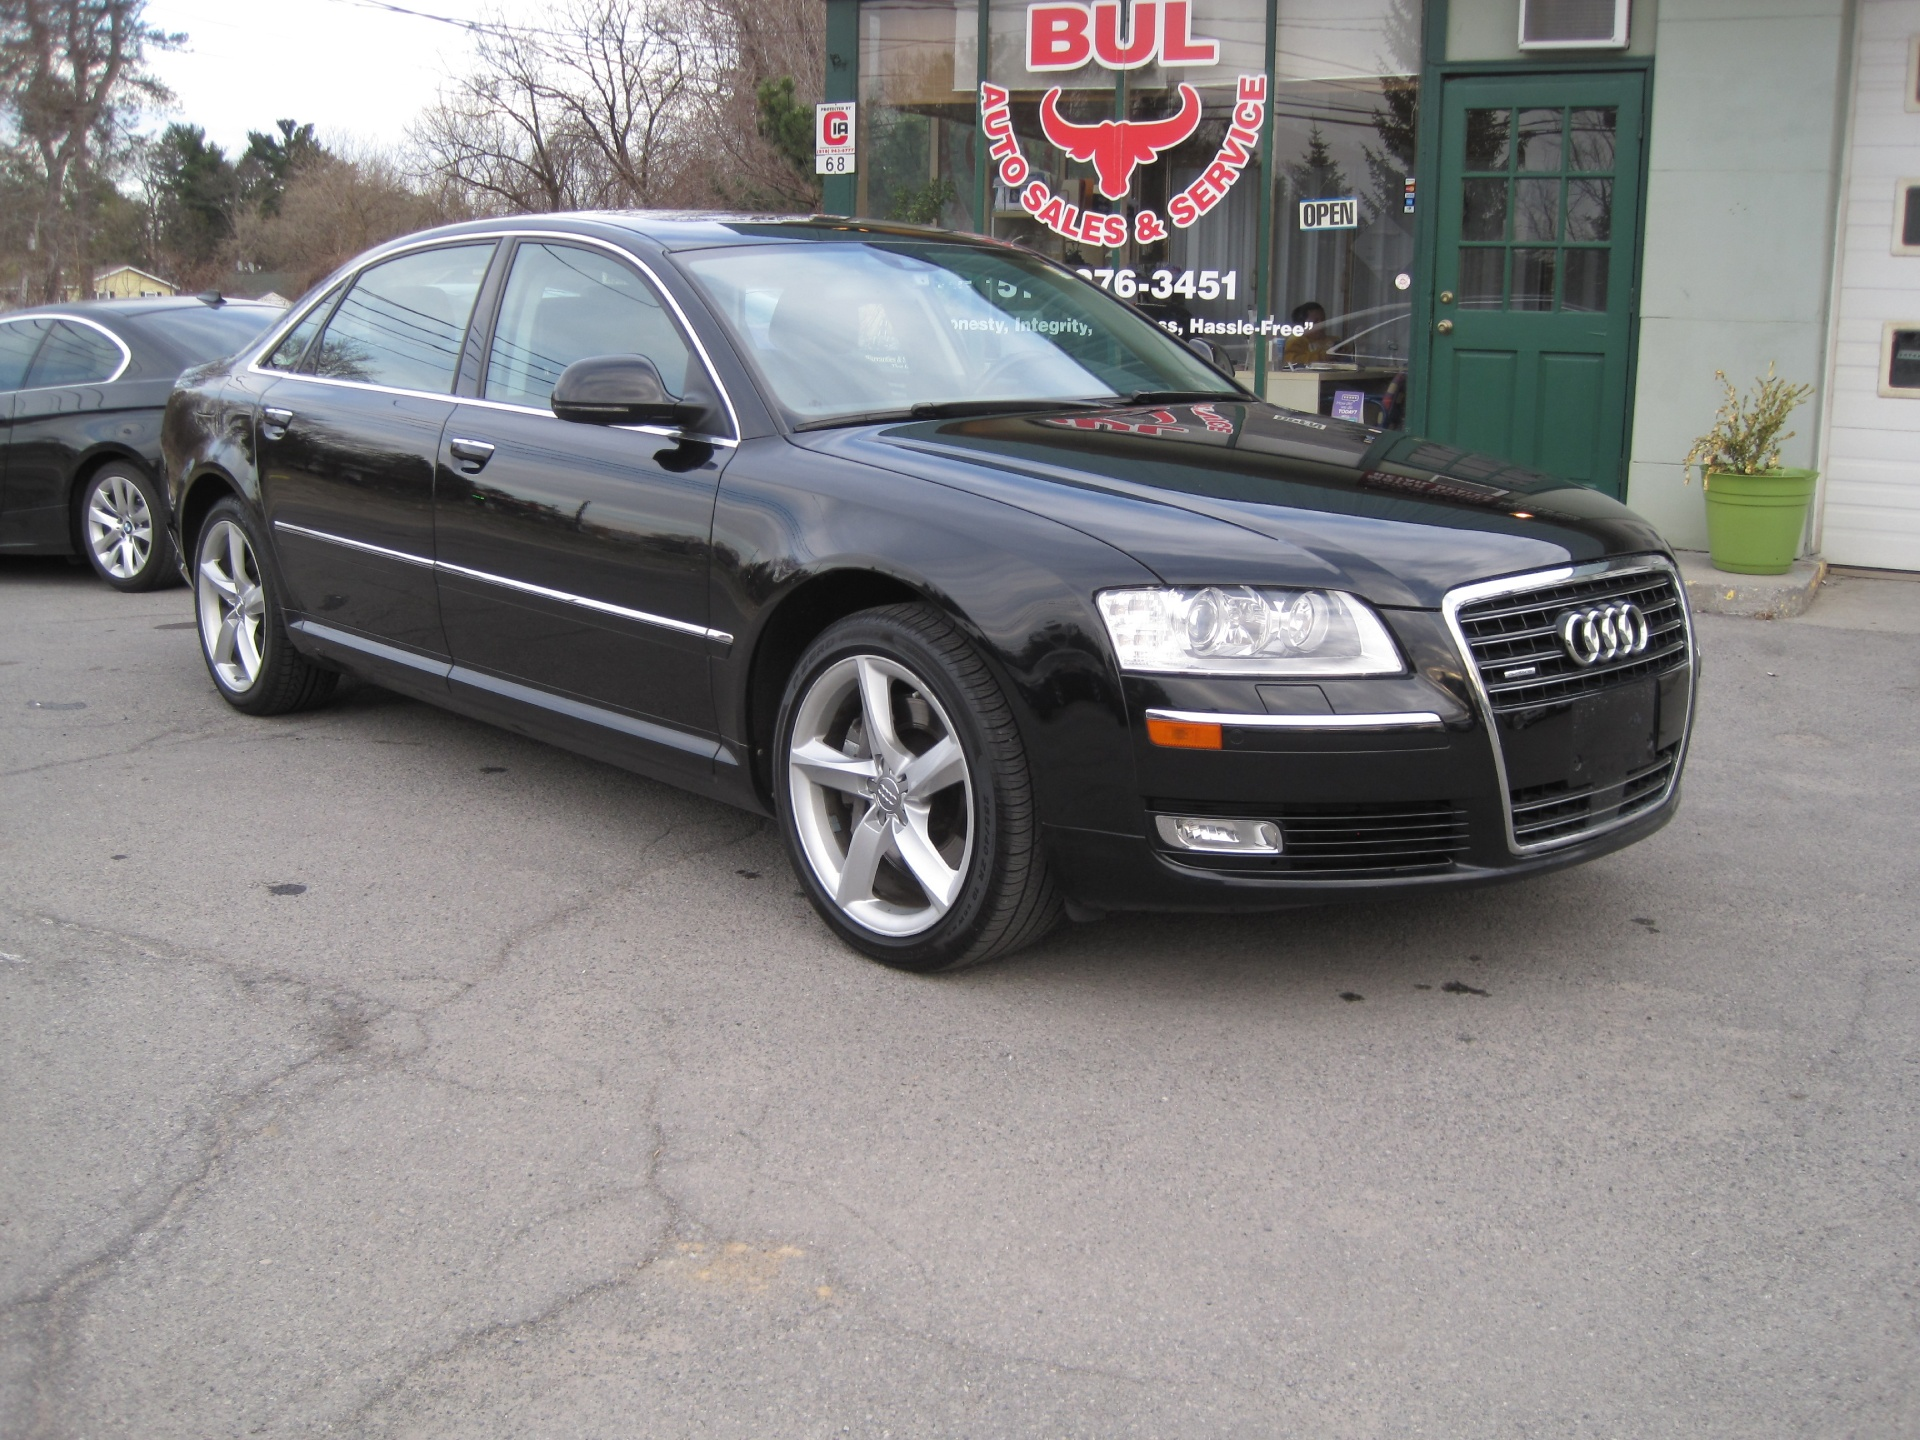 2009 Audi A8 L Quattro Awdsuper Nice And Cleanloaded With Options